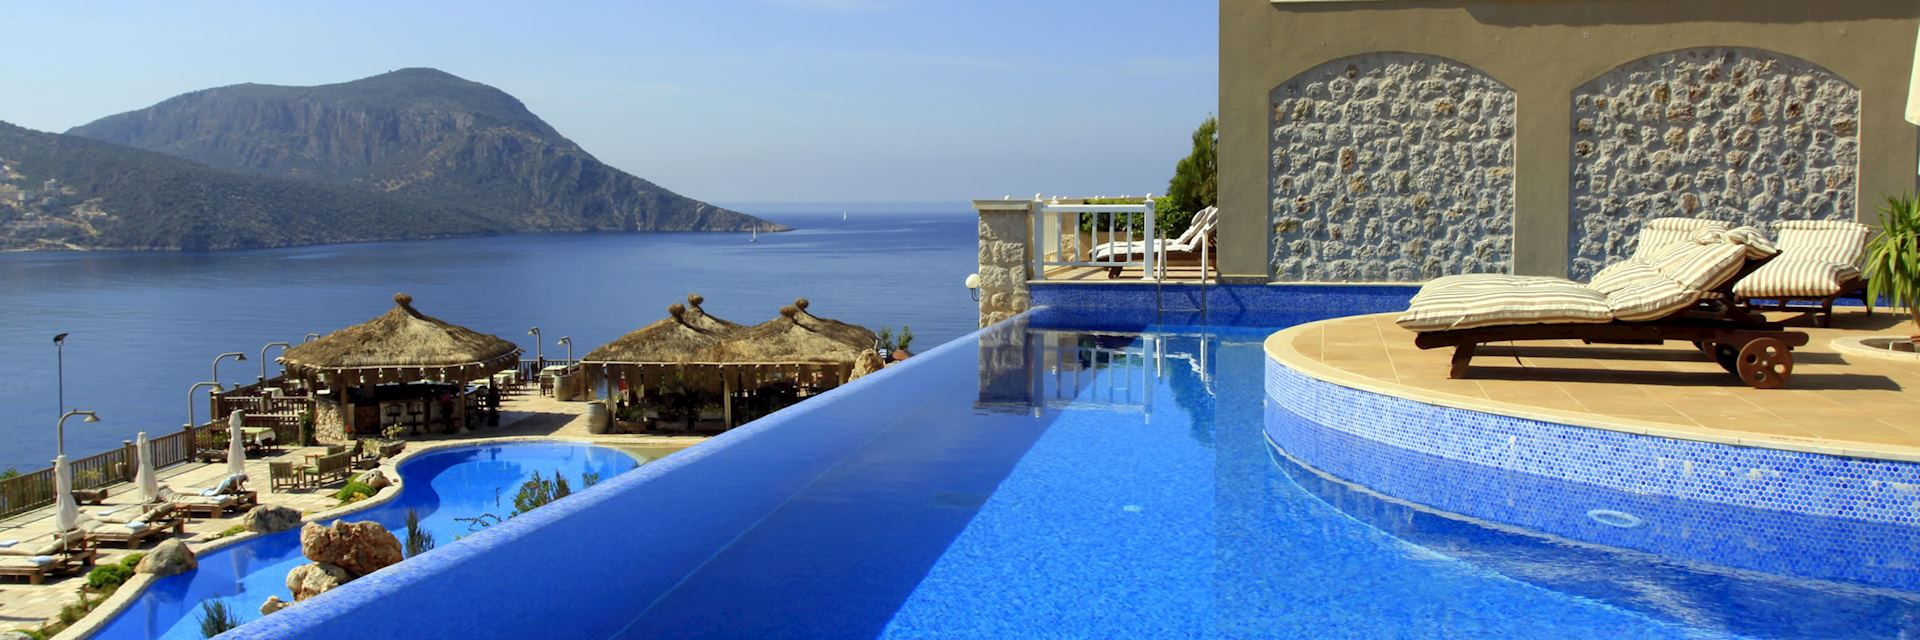 Likya Residence Hotel and Spa, Kalkan